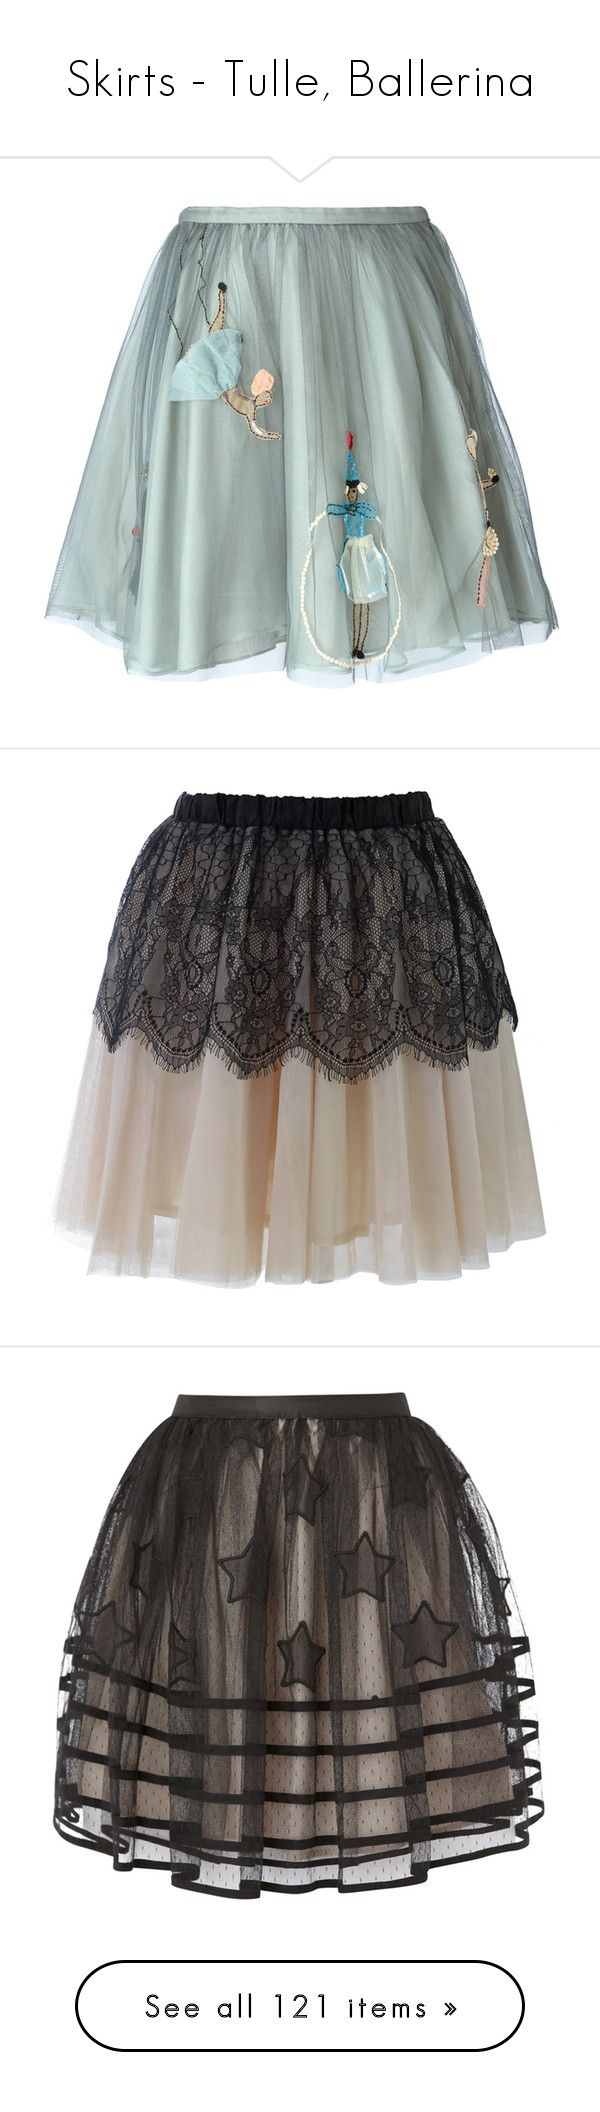 """""""Skirts - Tulle, Ballerina"""" by giovanna1995 ❤ liked on Polyvore featuring skirts, bottoms, saias, gonne, green, red valentino skirt, red valentino, embroidered skirt, green skirt and tulle skirts"""